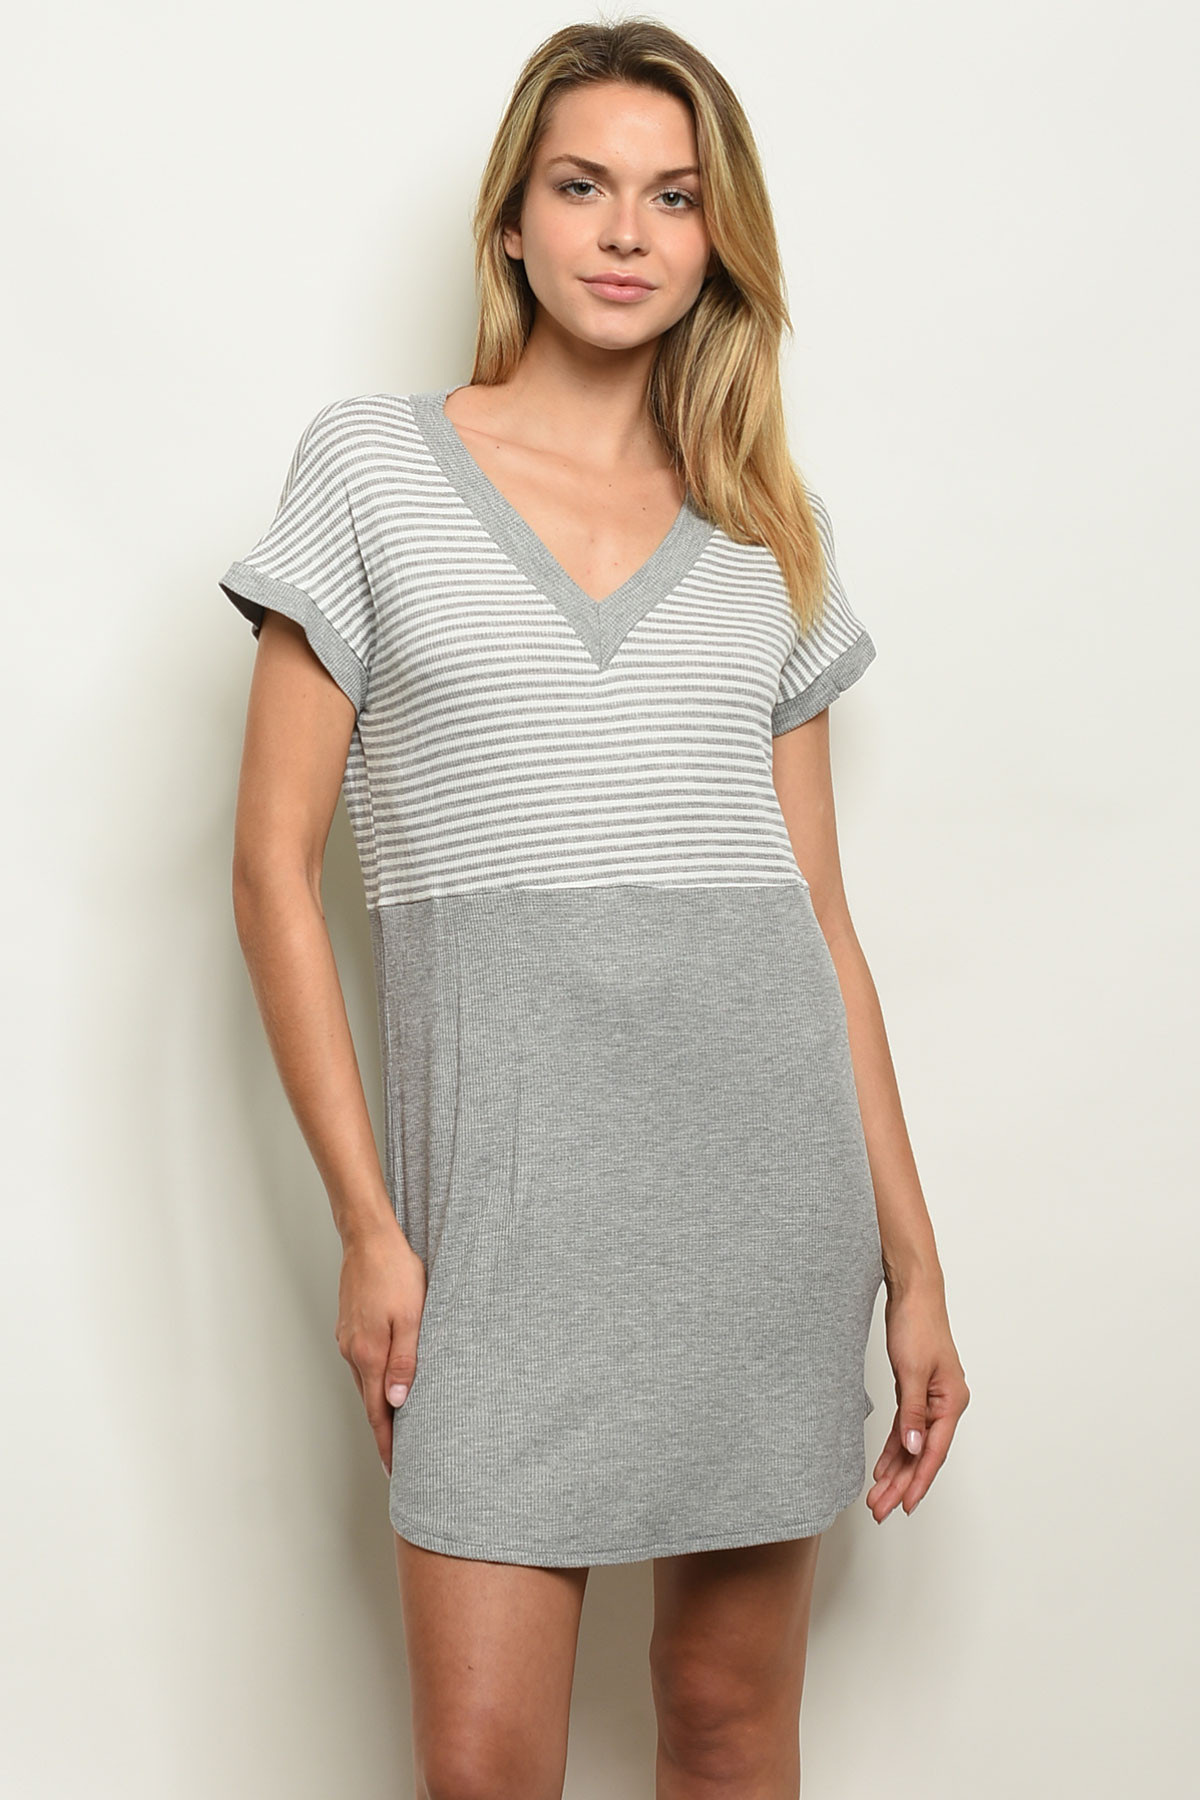 c34769b00b5 C45-A-3-D1140 GRAY WHITE STRIPES DRESS 2-2-2